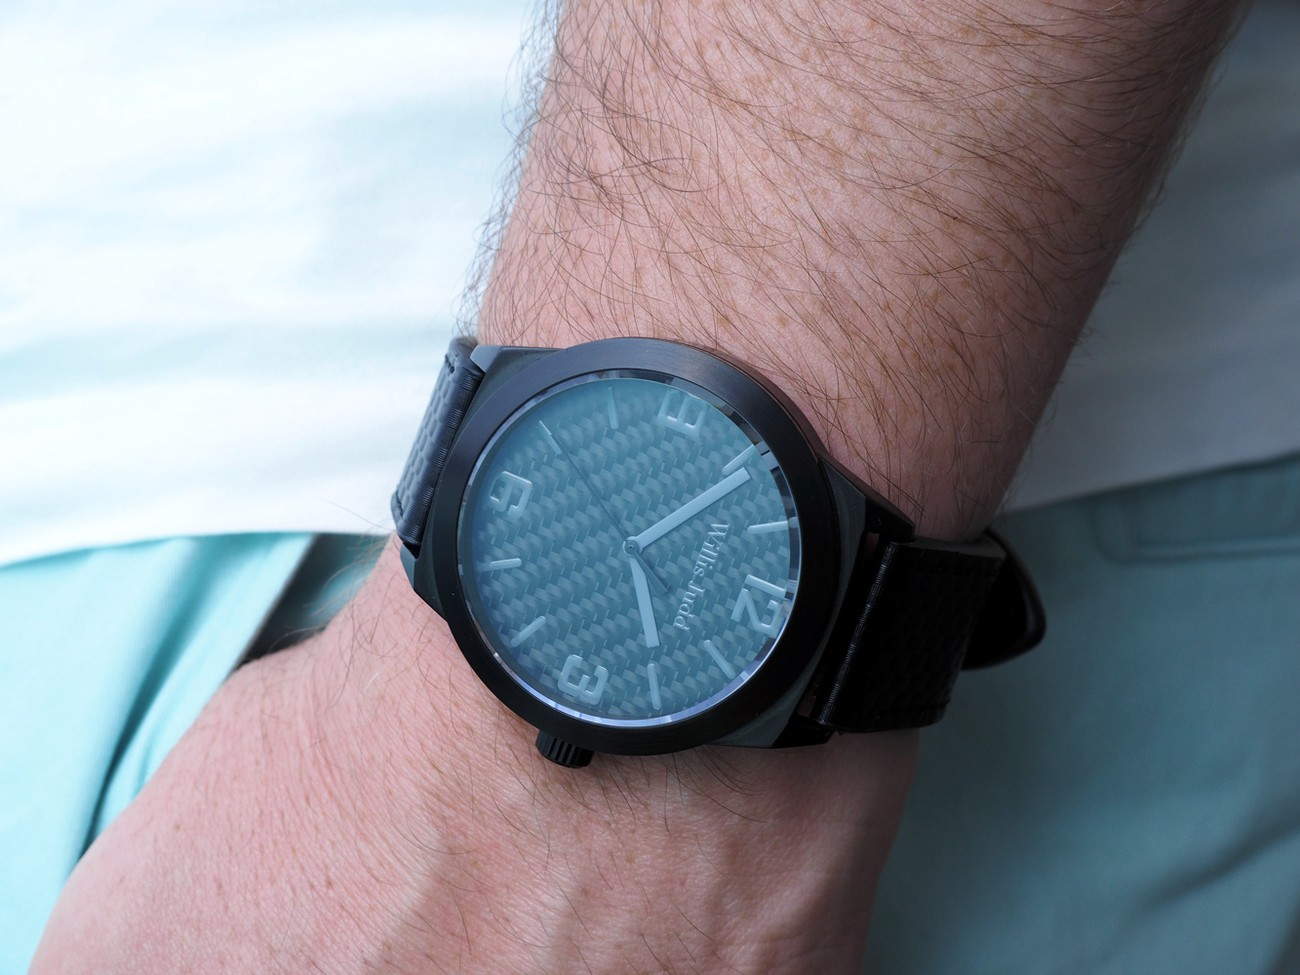 Carbon Fiber Watch Made Affordable – Designed in Australia